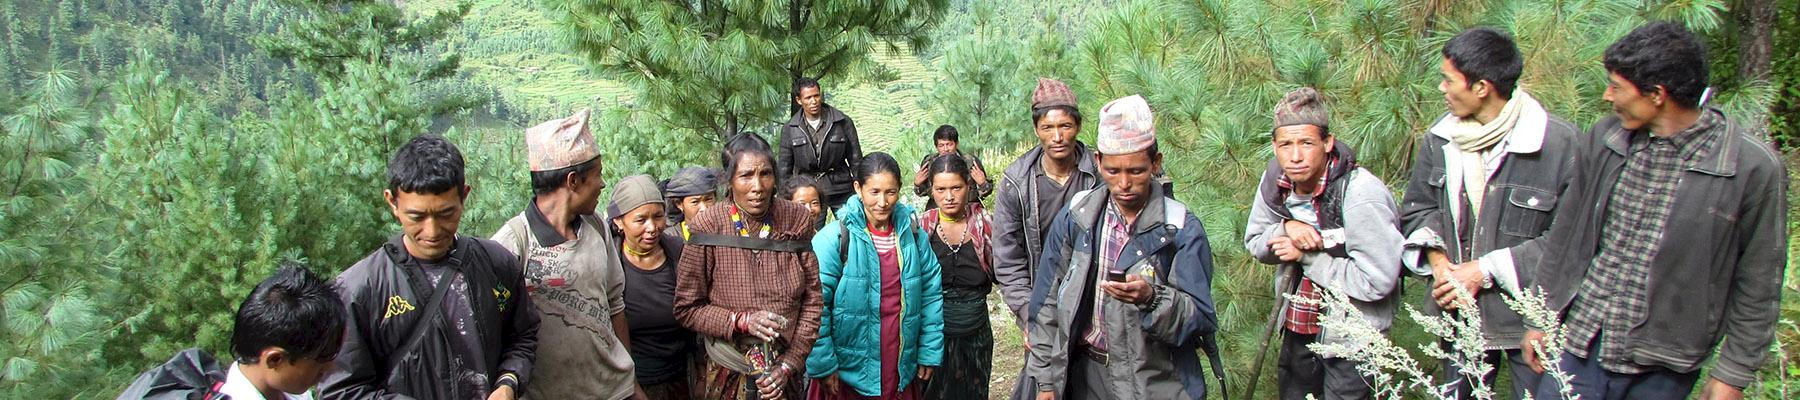 Jatamansi harvesters in the Alpine forests of Nepal. Photo: ANSAB